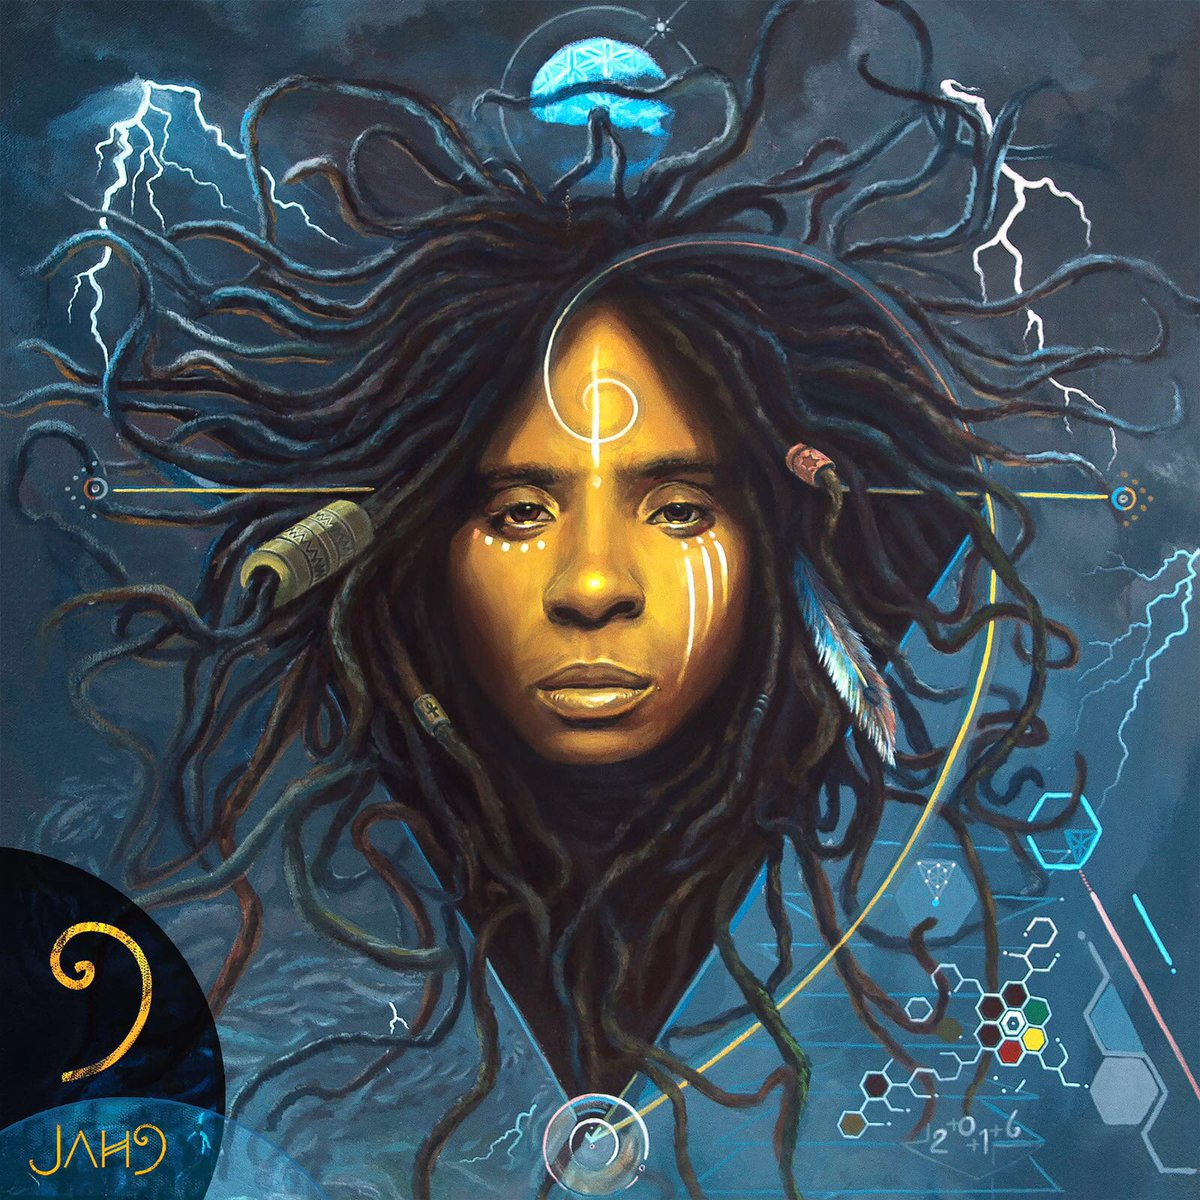 .@Jah9's album, 9, is out today. Get it here - https://t.co/0EtQGABDFz. https://t.co/KN3wAKyHvp